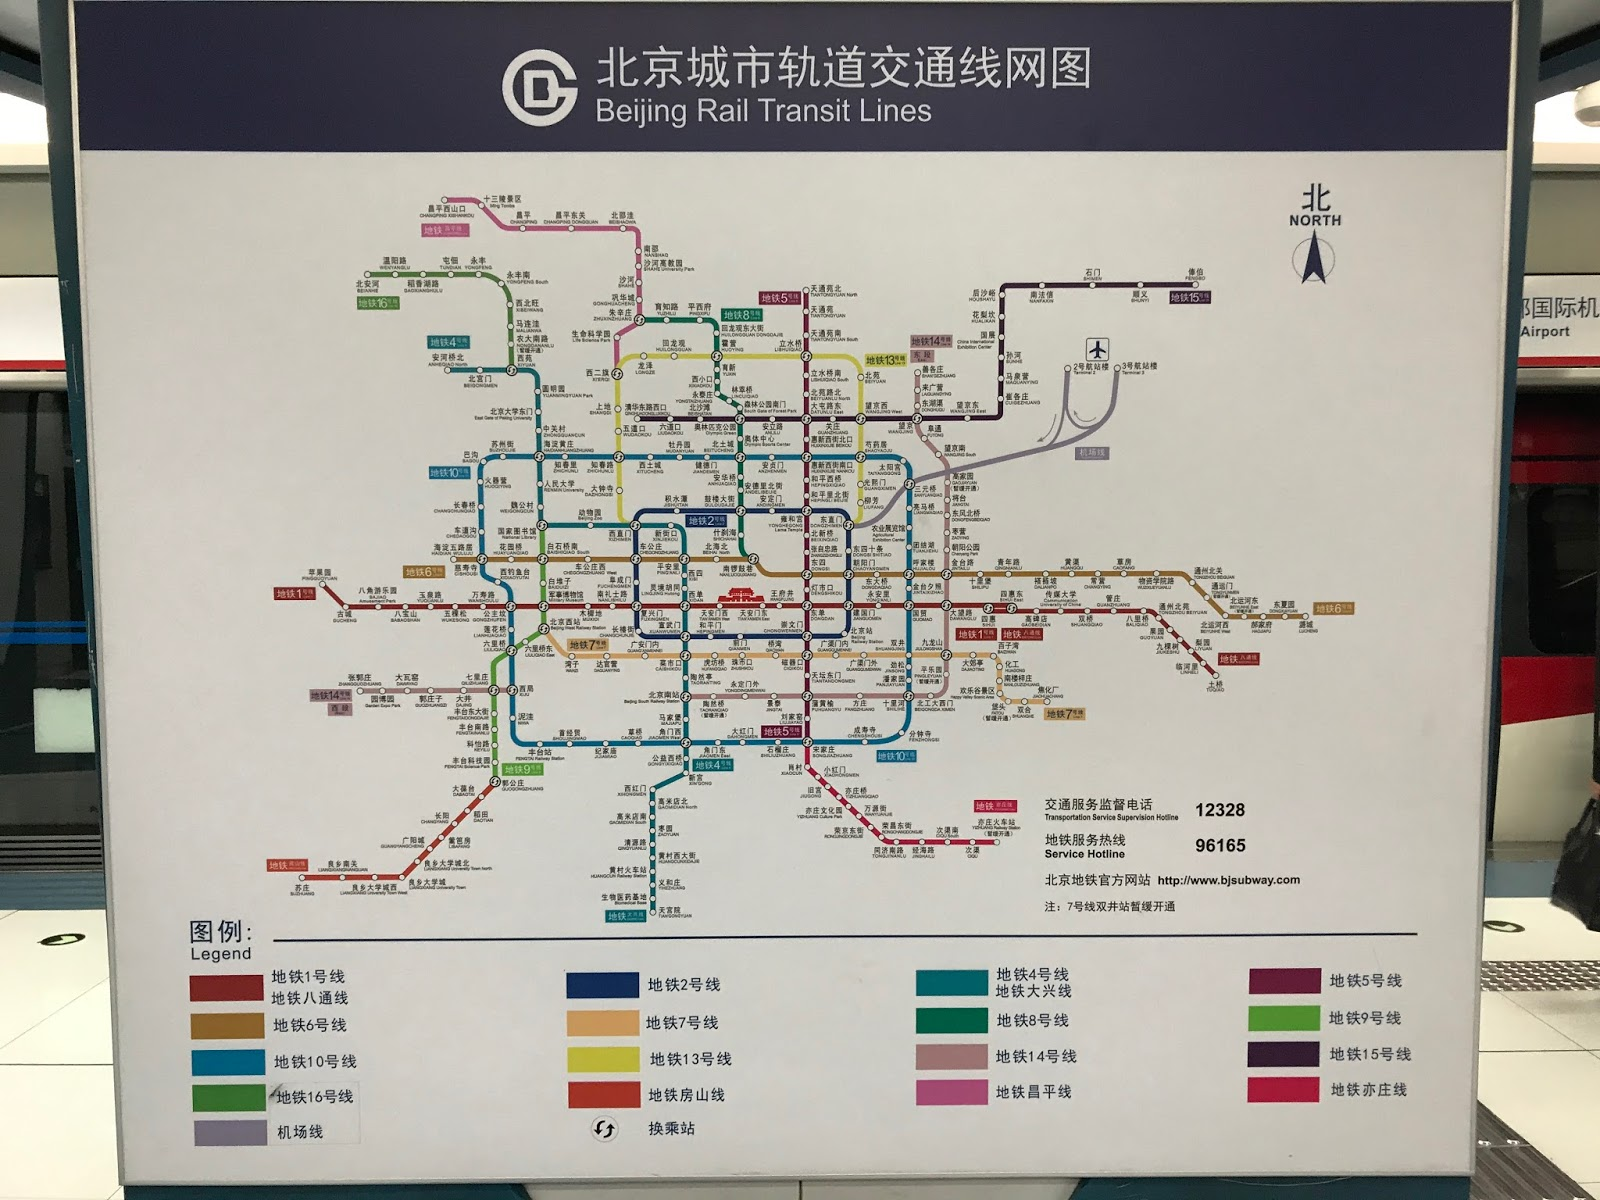 Beijing Subway Map 2017 Legend.Indulgent Sojourns Random Adventures In Food Wine And Travel